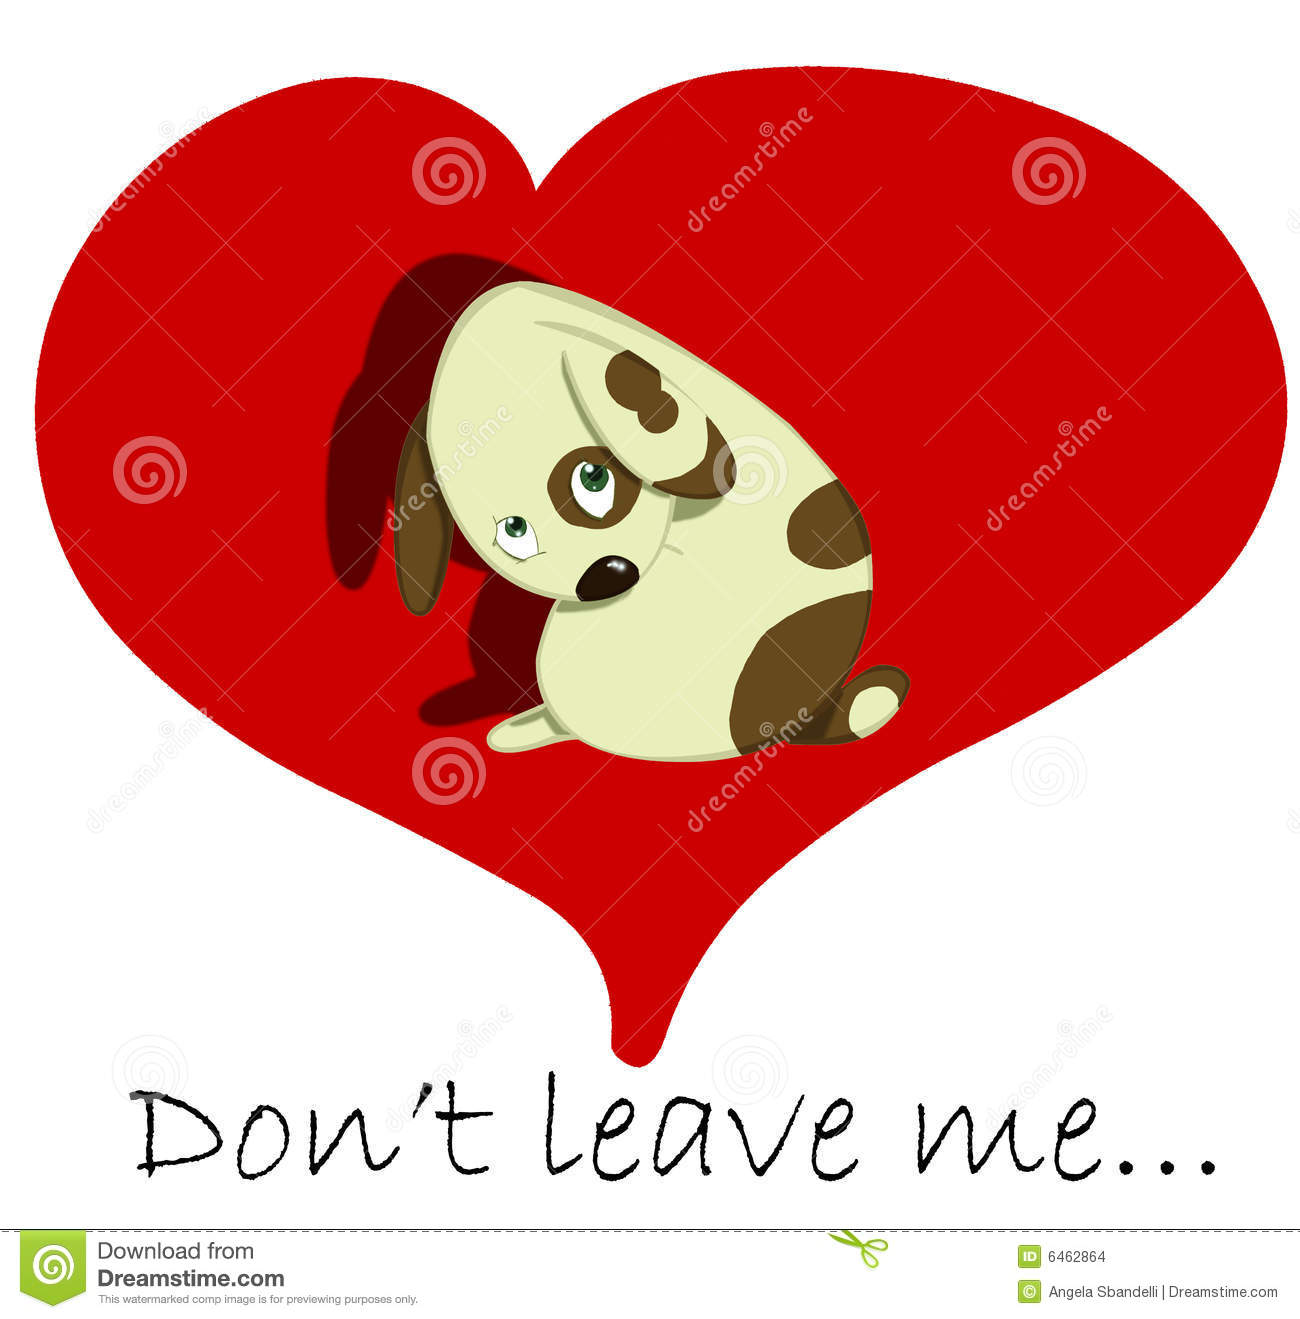 DonT Leave Me